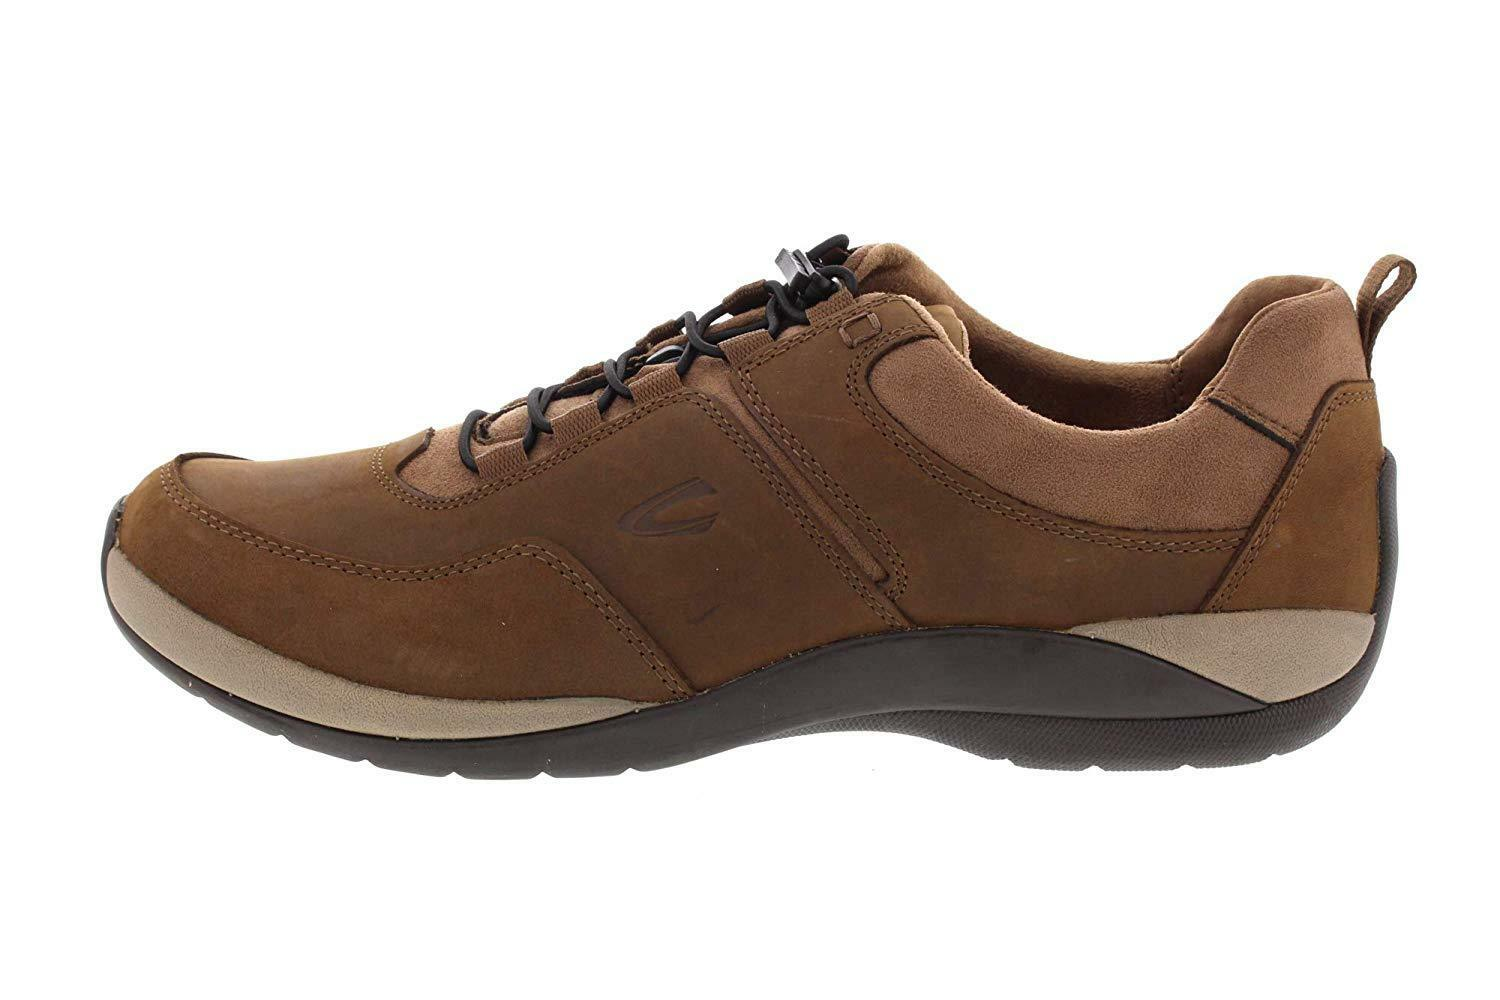 Camel Active Herren Schuhe Moonlight